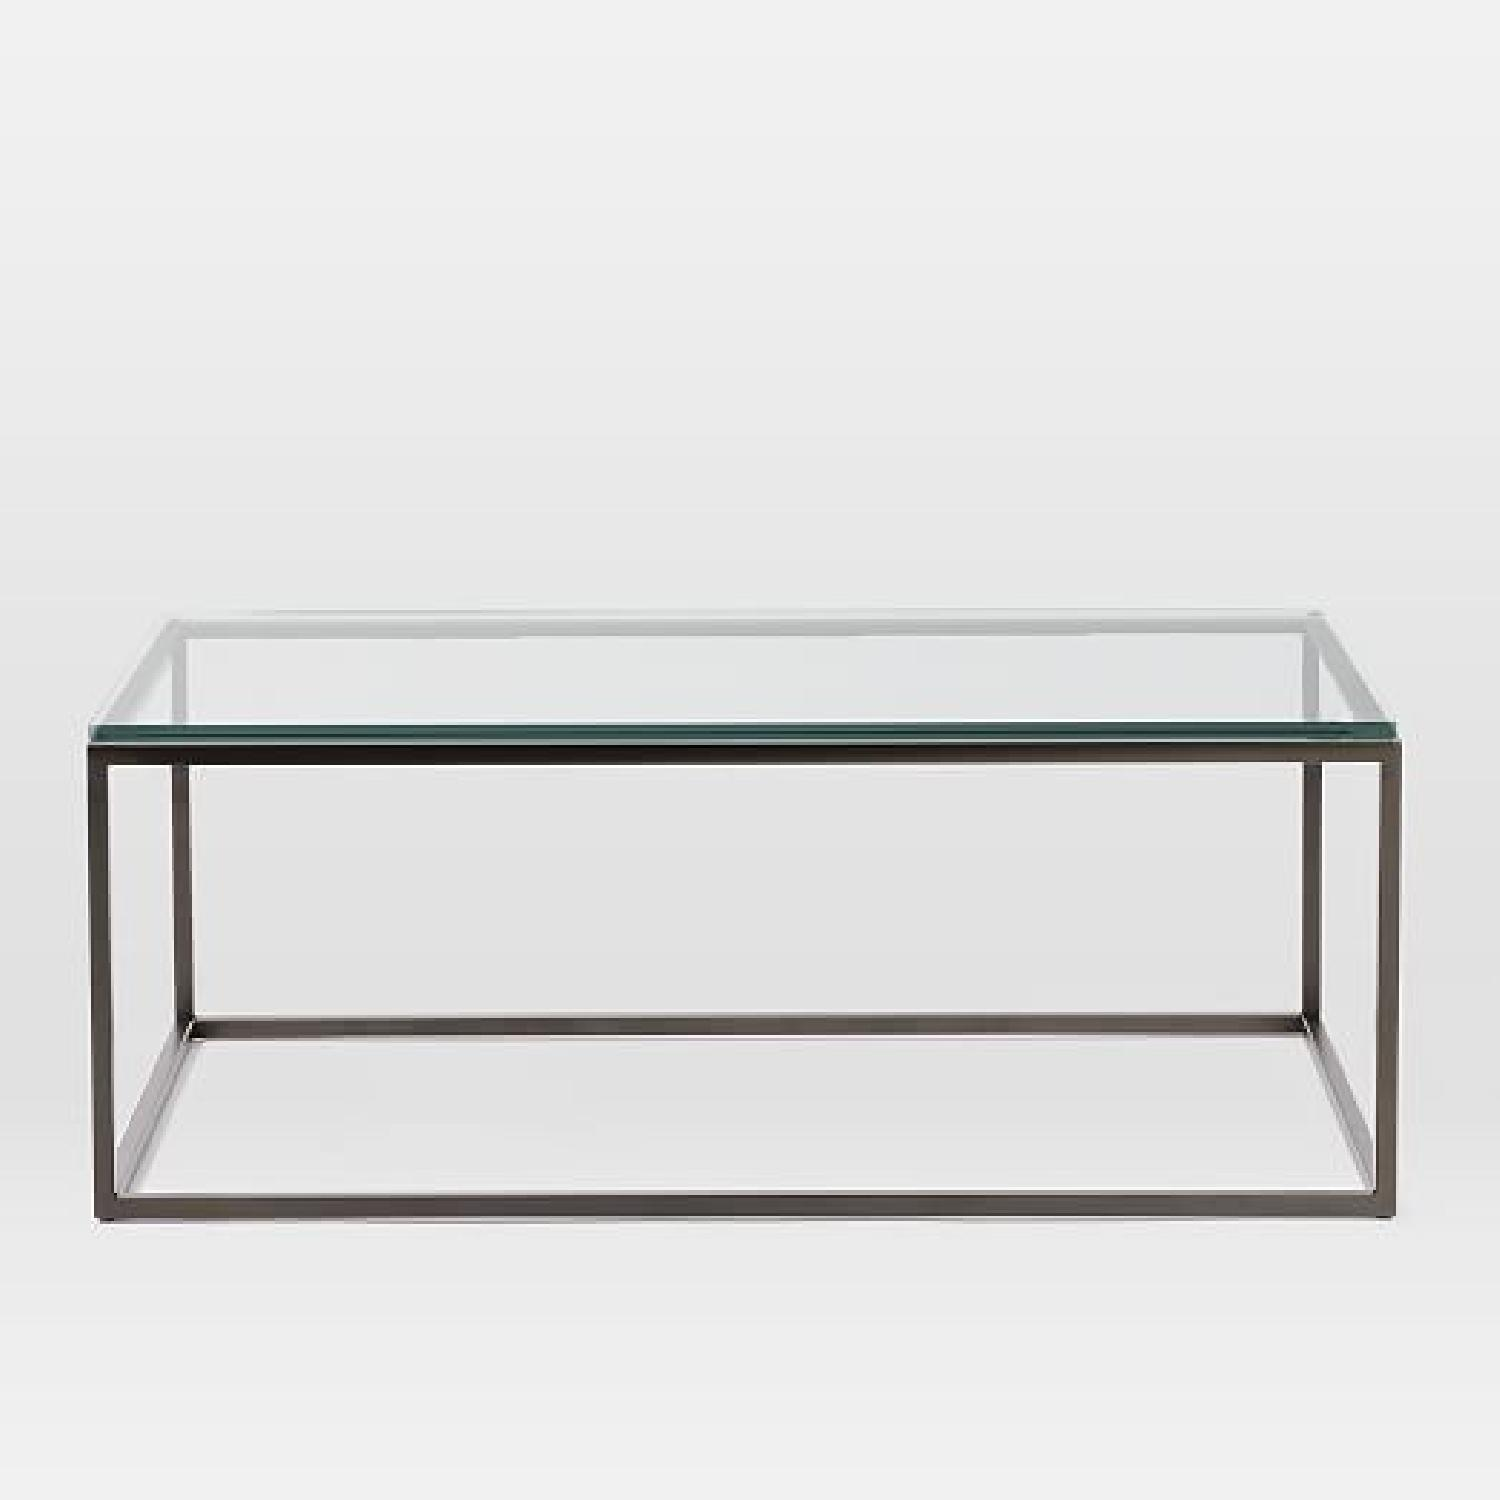 West Elm Box Frame Coffee Table In GlassAntique Bronze AptDeco - West elm geometric coffee table